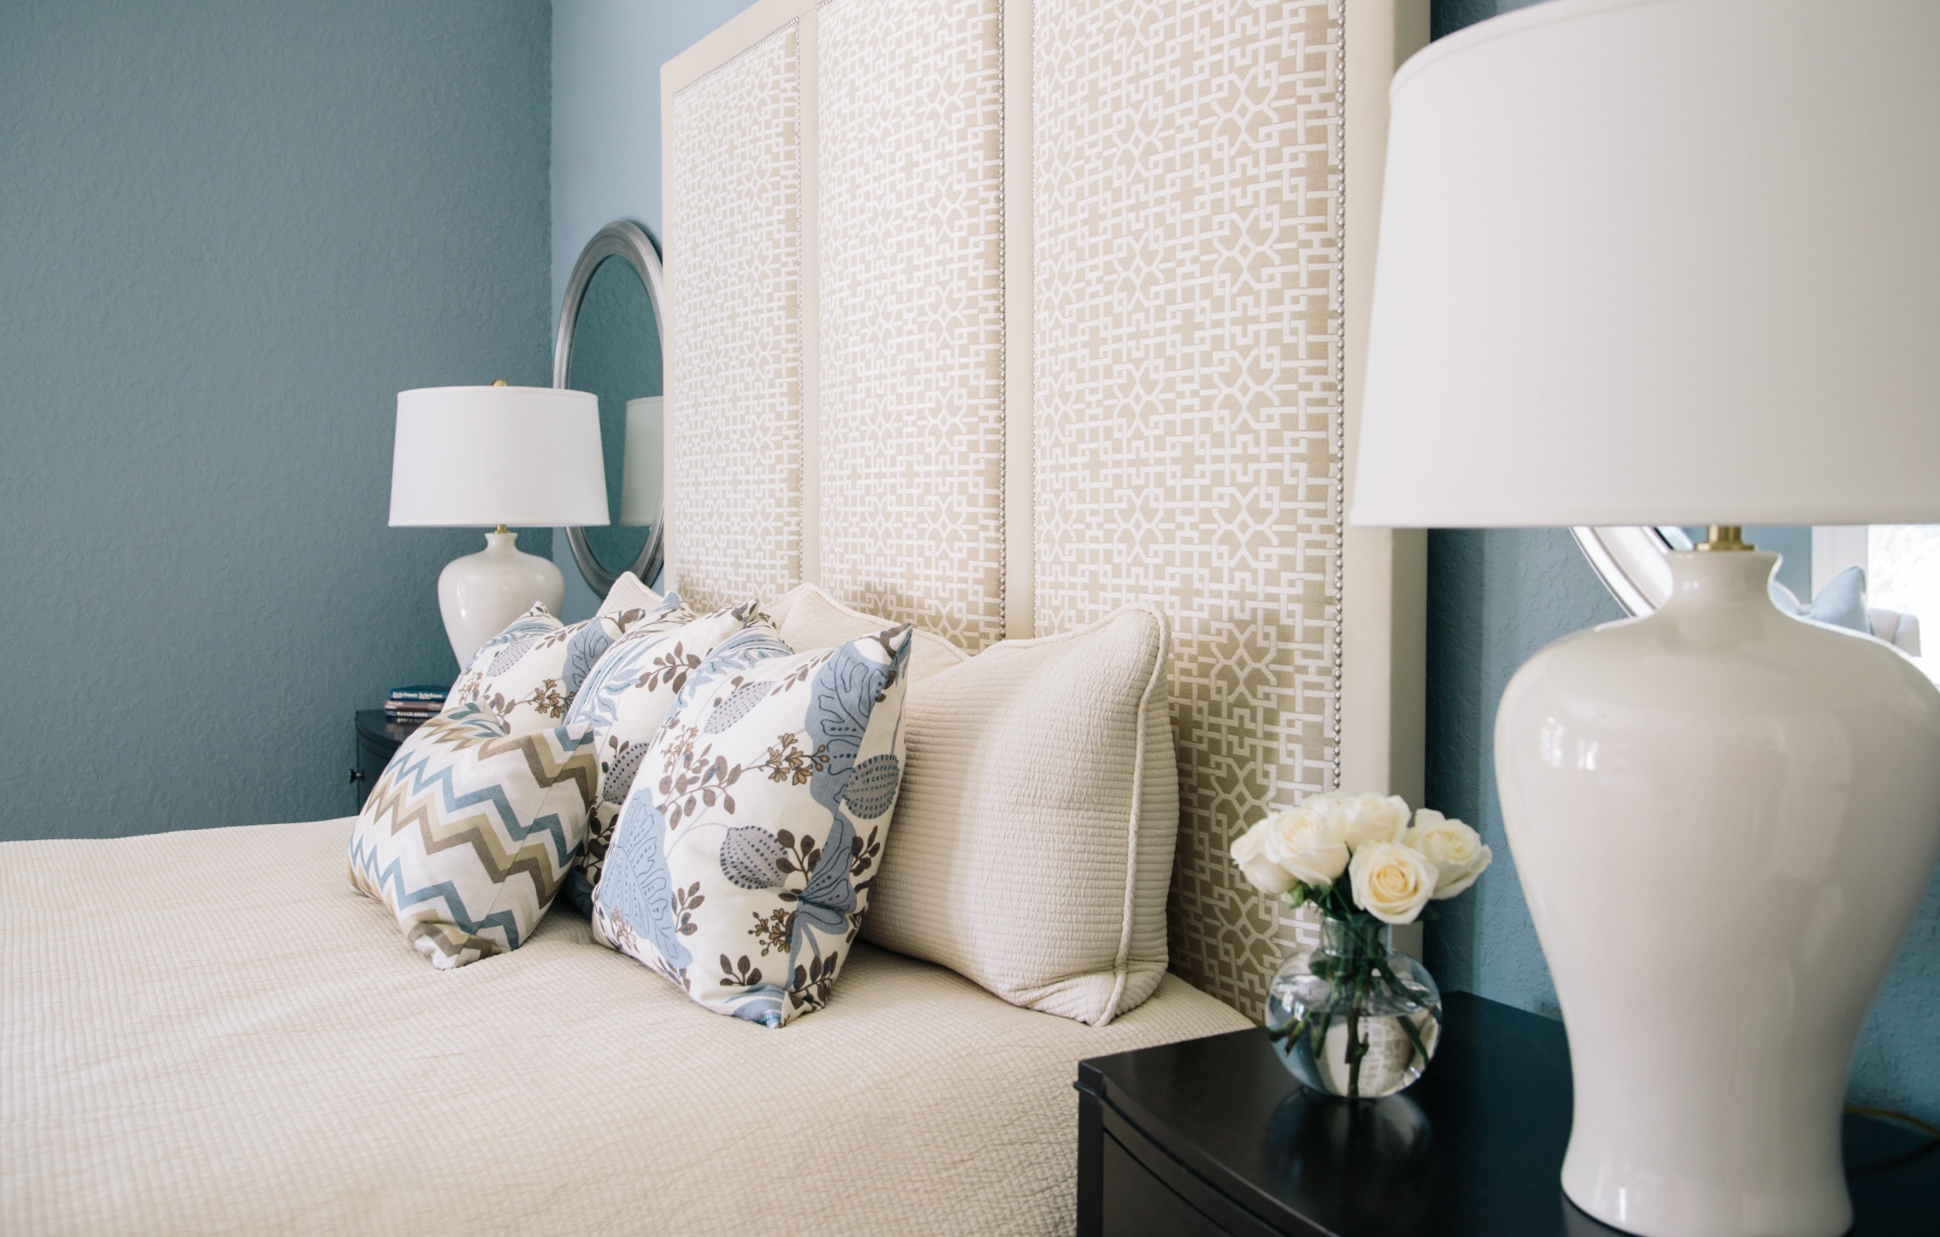 Master bedroom with custom pillows that add pattern and interest to this space. | Interior Designer: Carla Aston #pillows #patternedpillows #bluepillows #homedecor